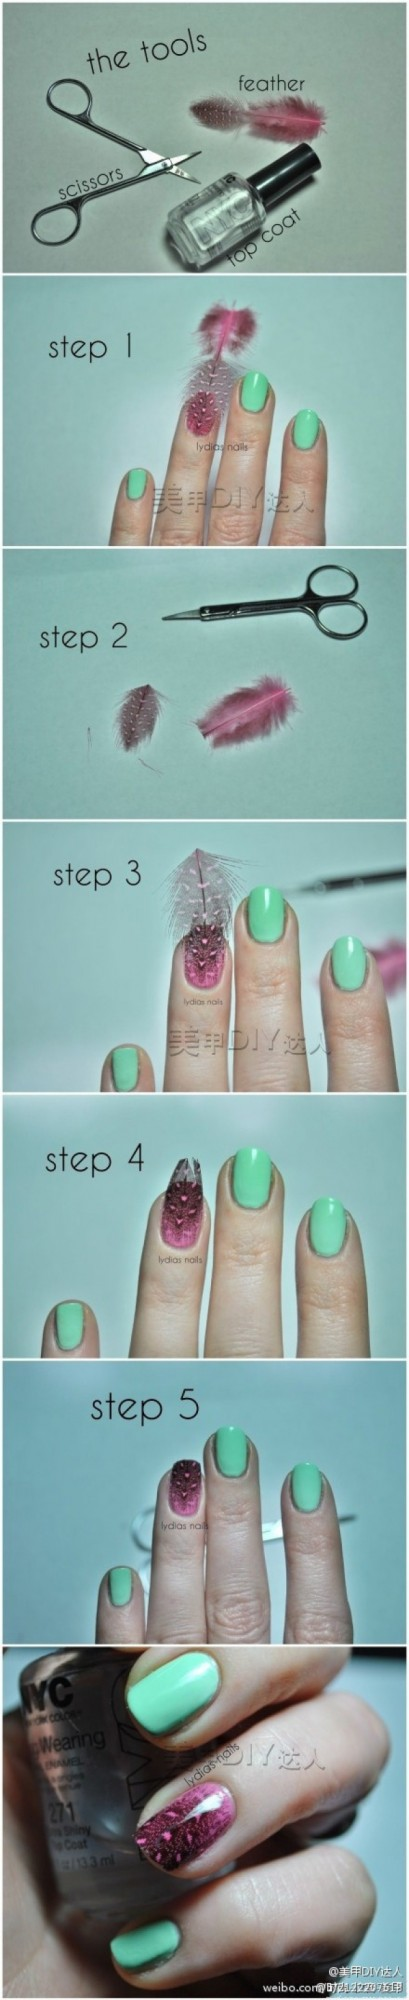 39 Interesting Nail Art Tutorials (16)